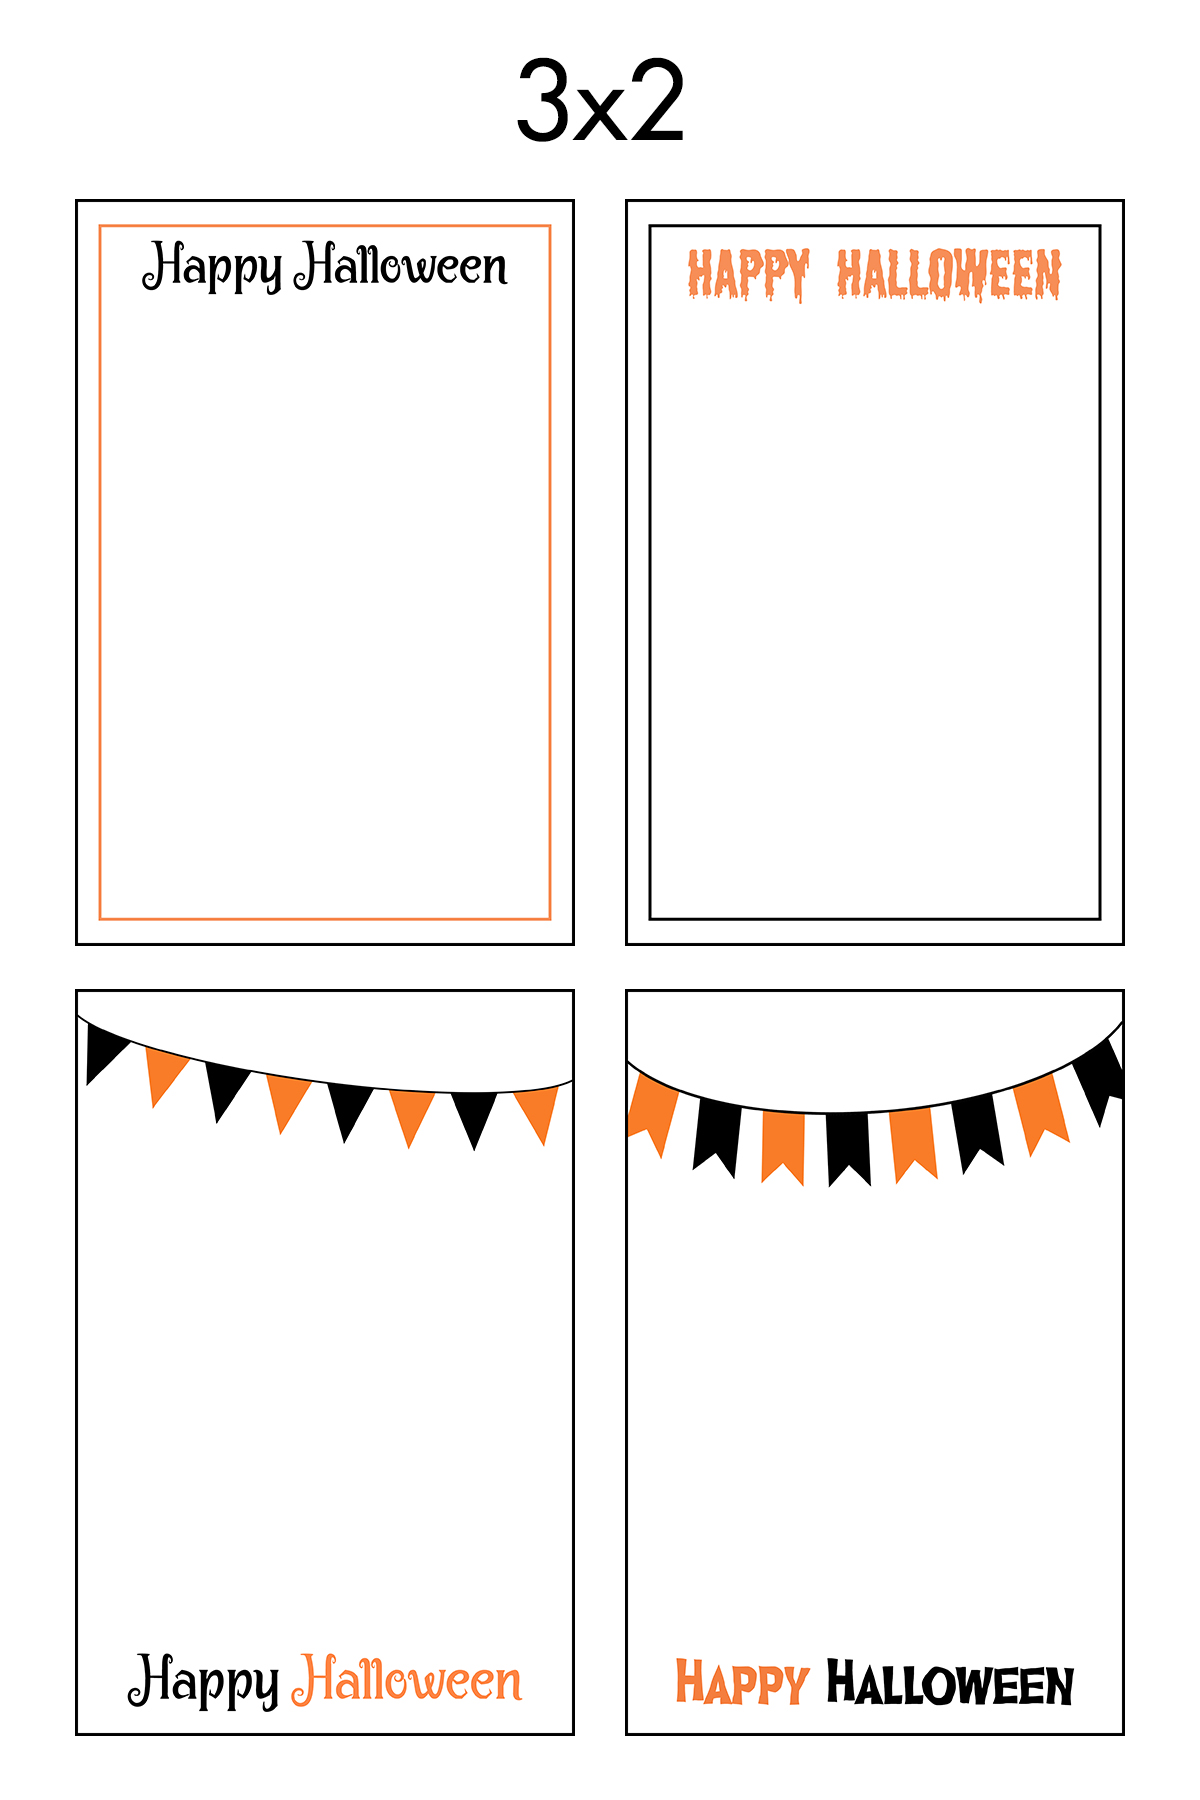 Free Printable 3x2 Halloween Earring Cards Collage